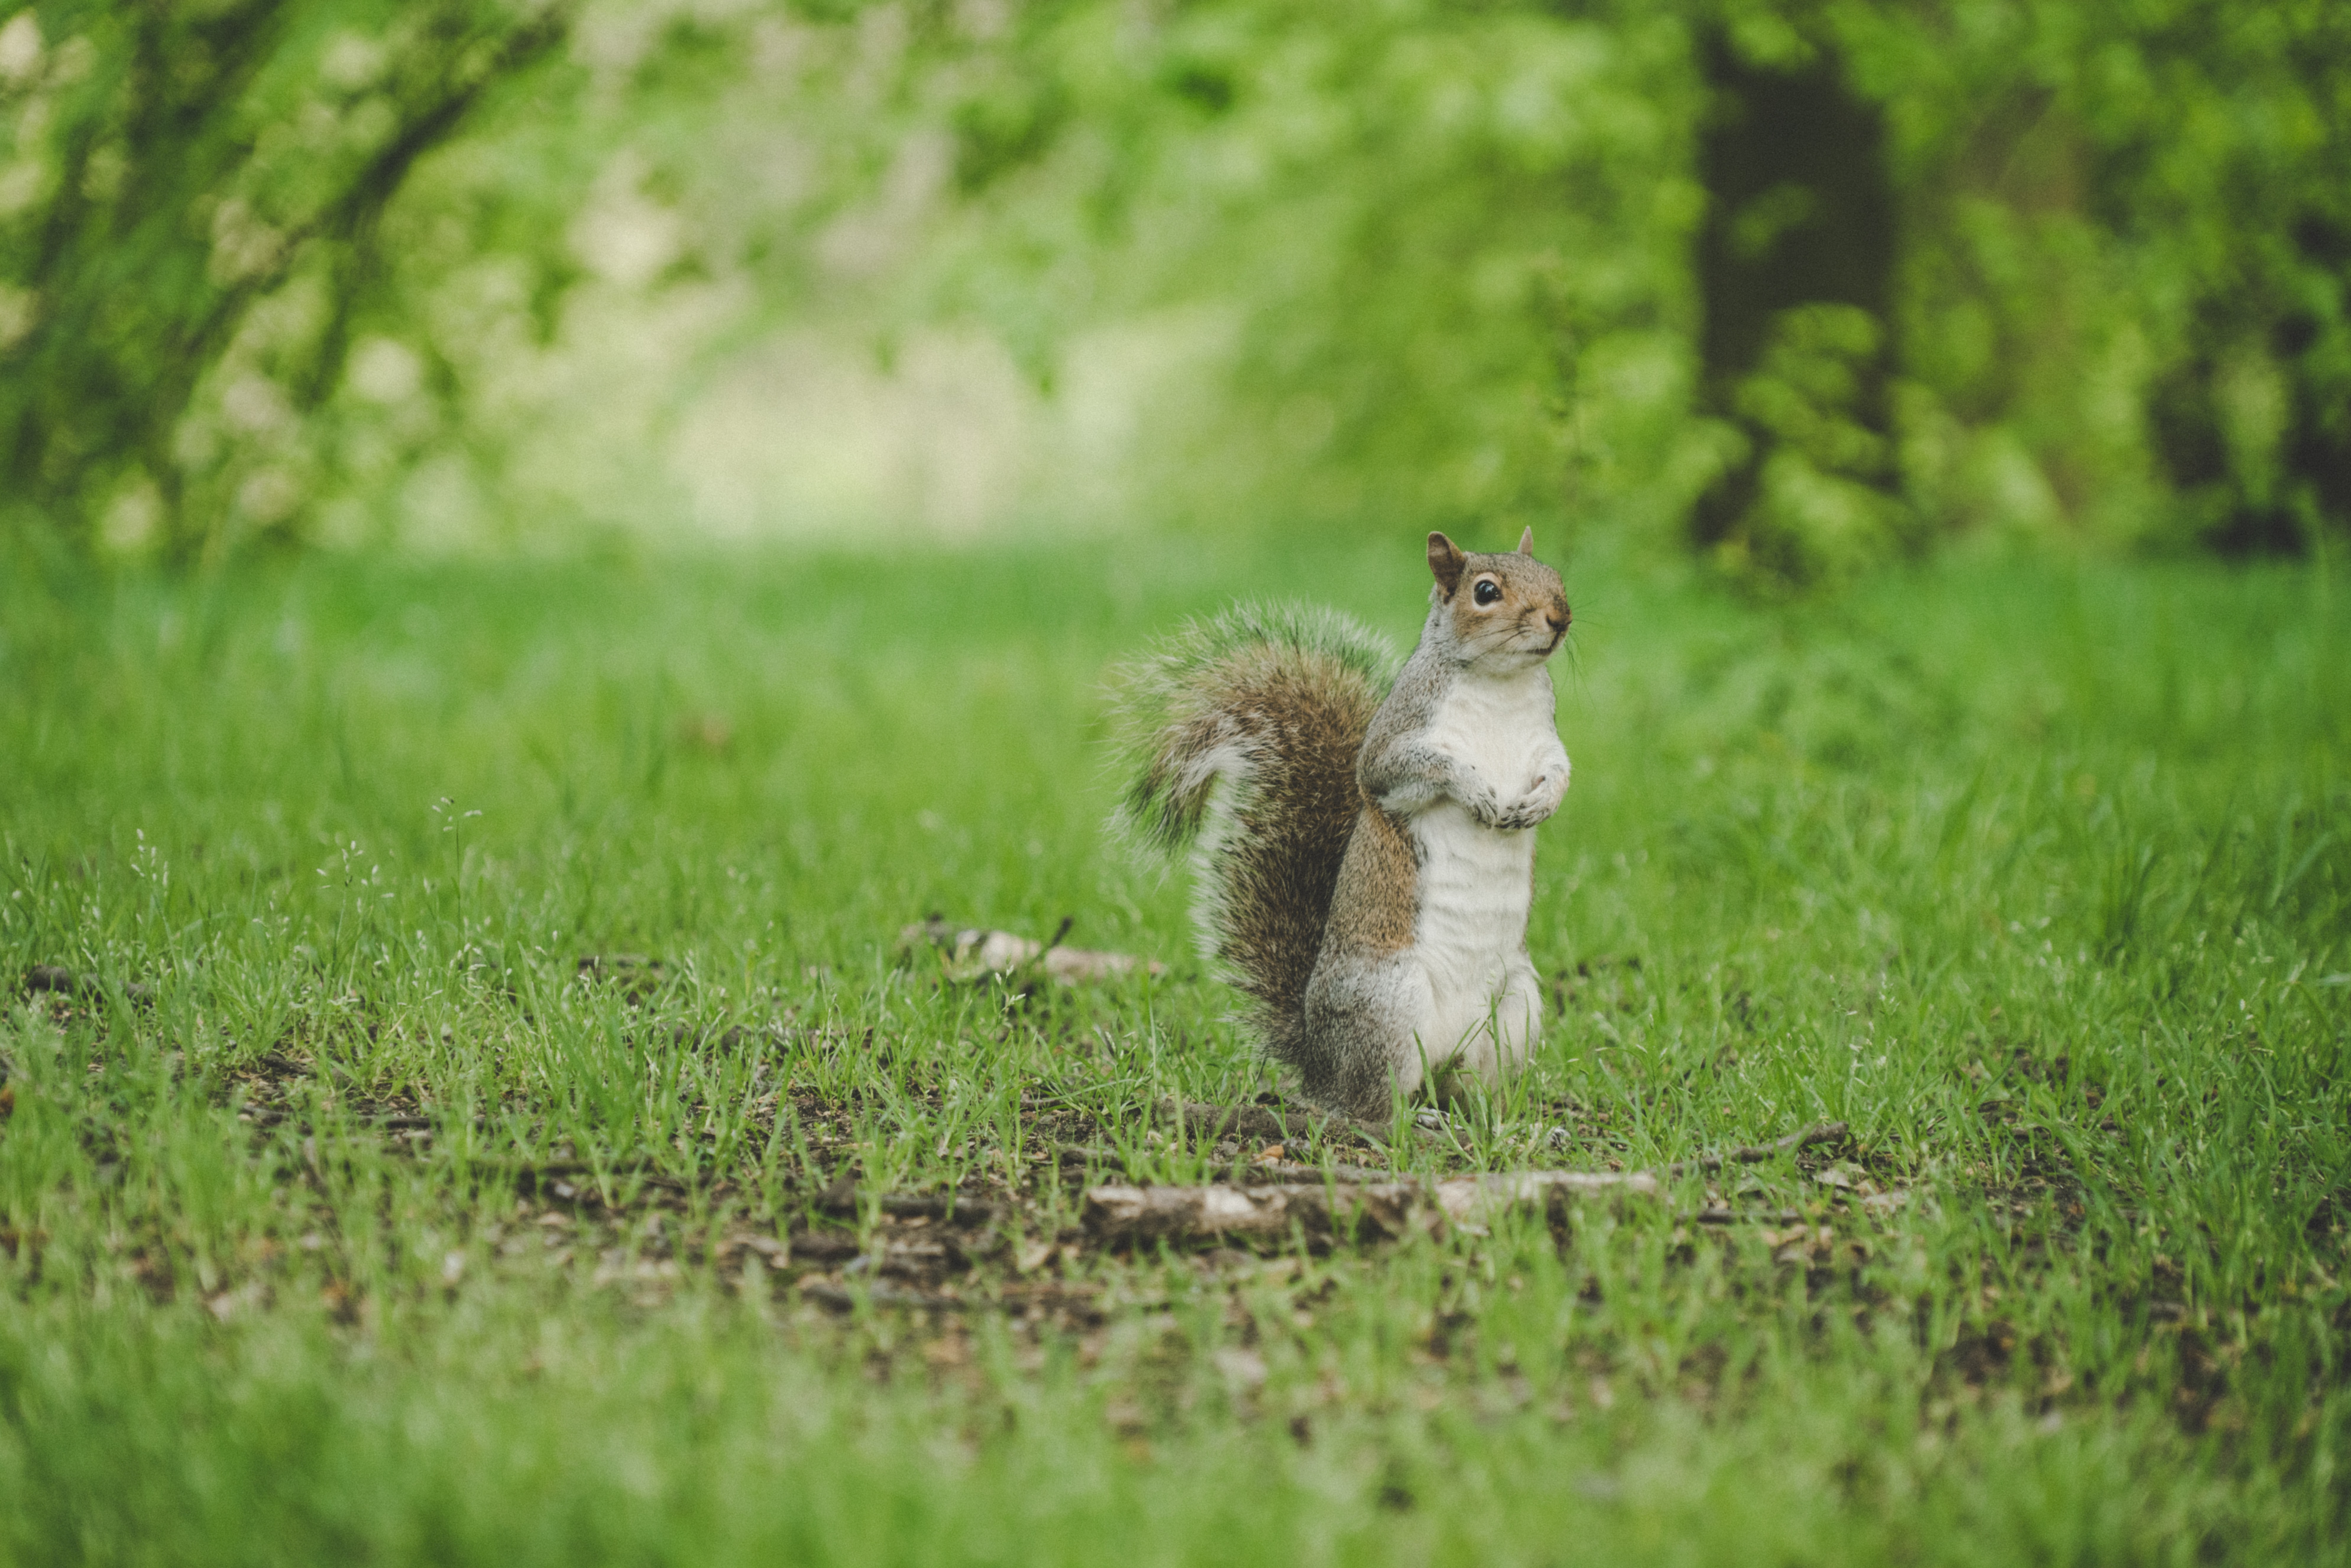 squirrel standing on green grass field